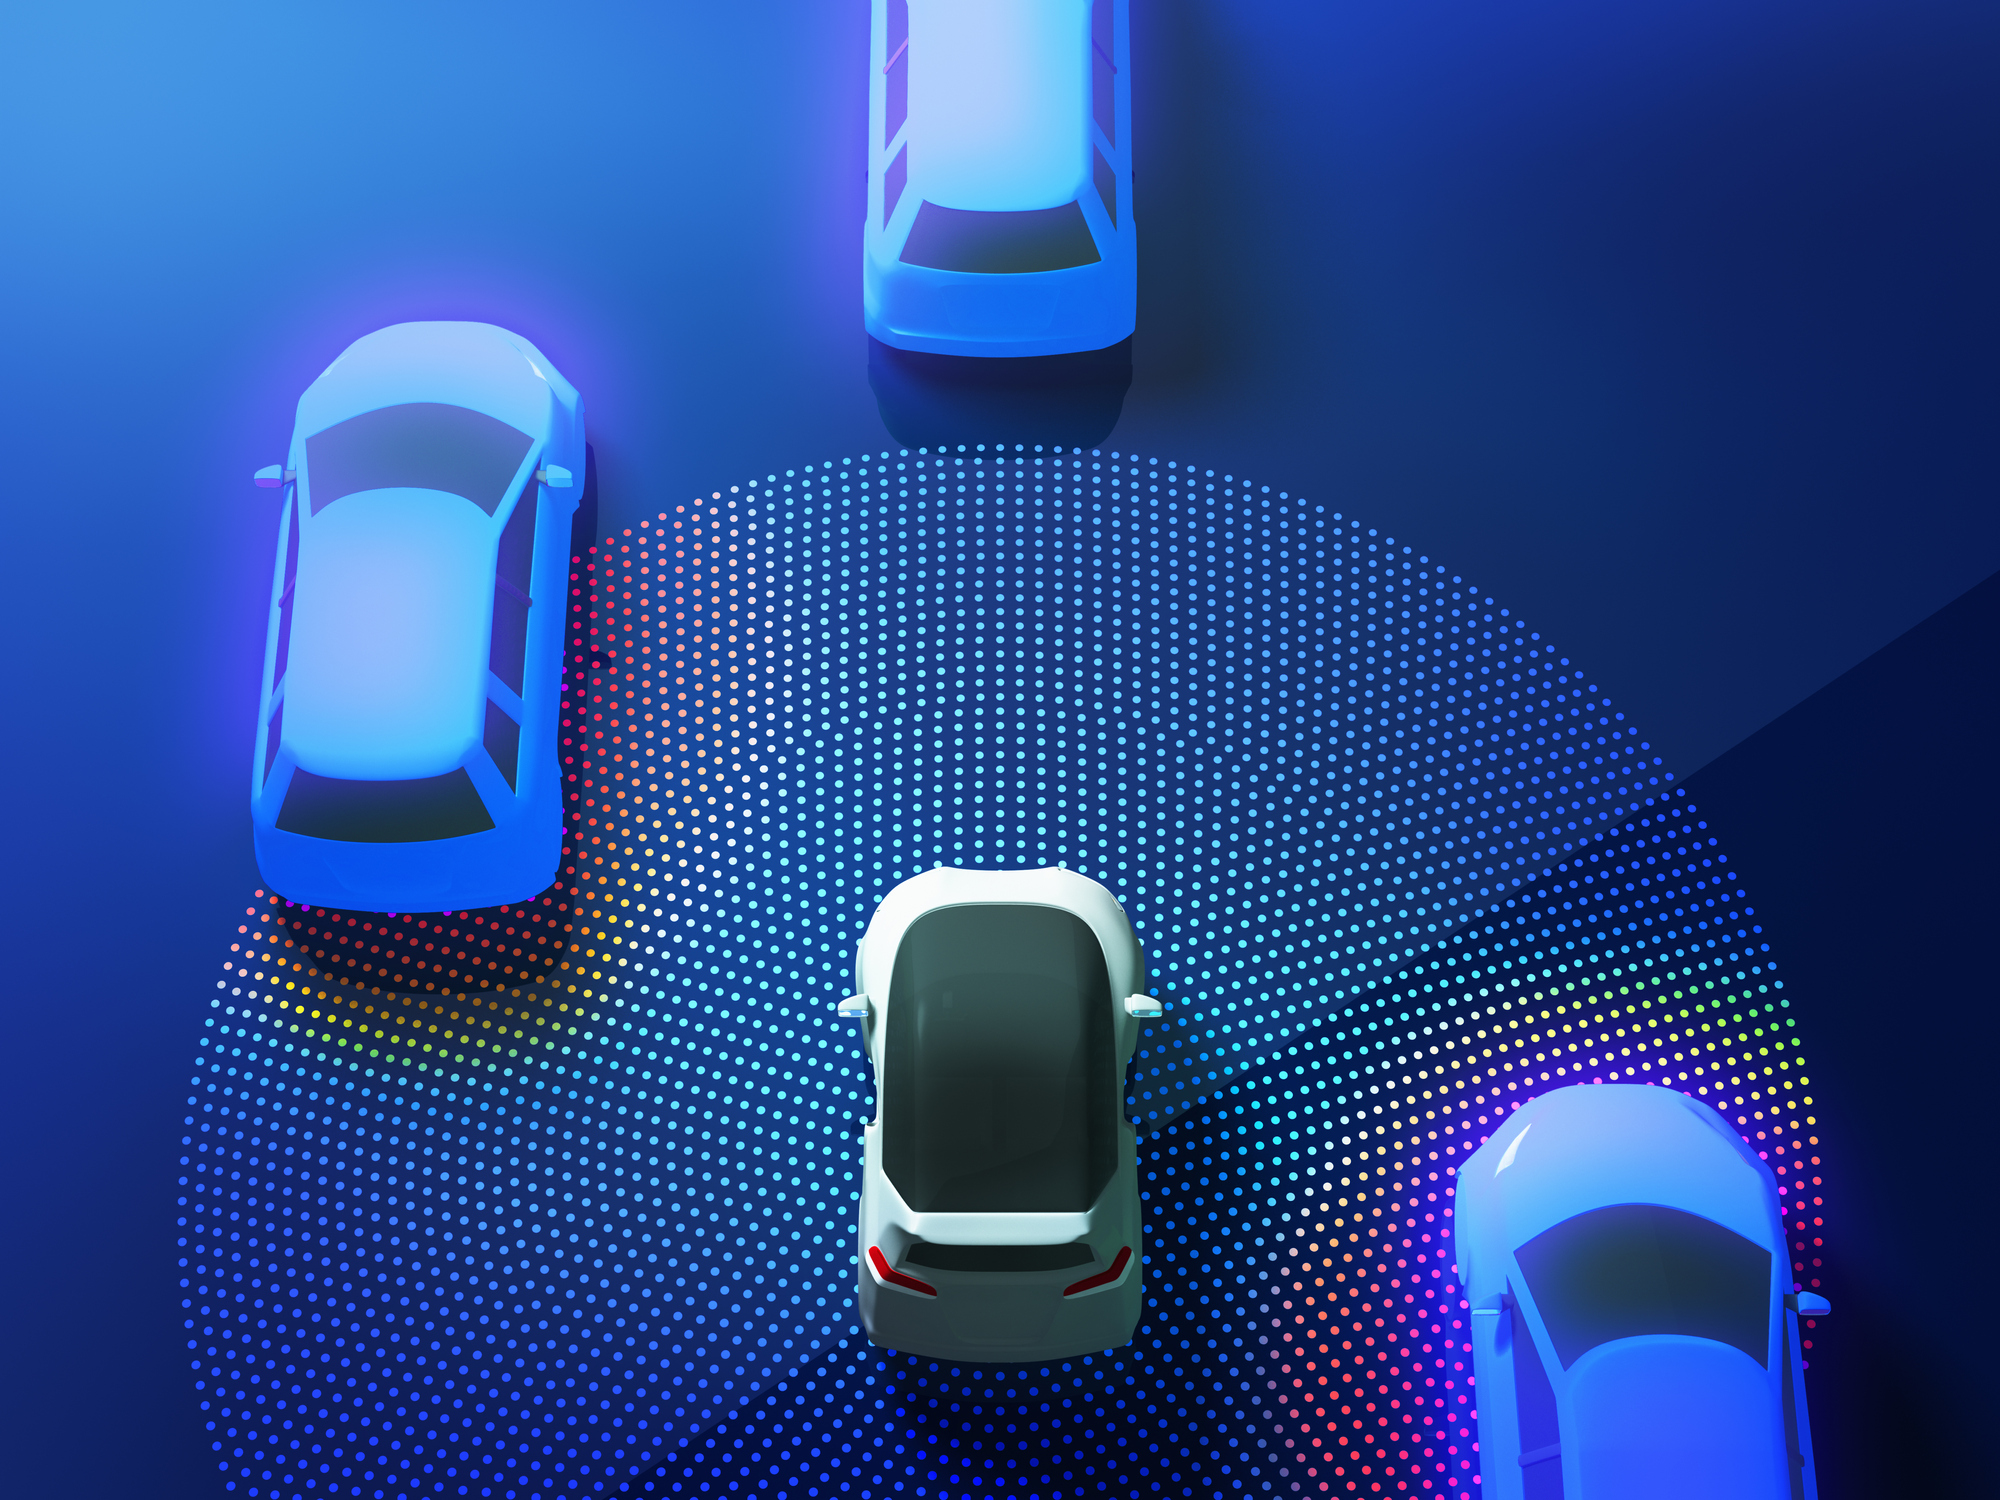 Auto driving smart cars on a blue background